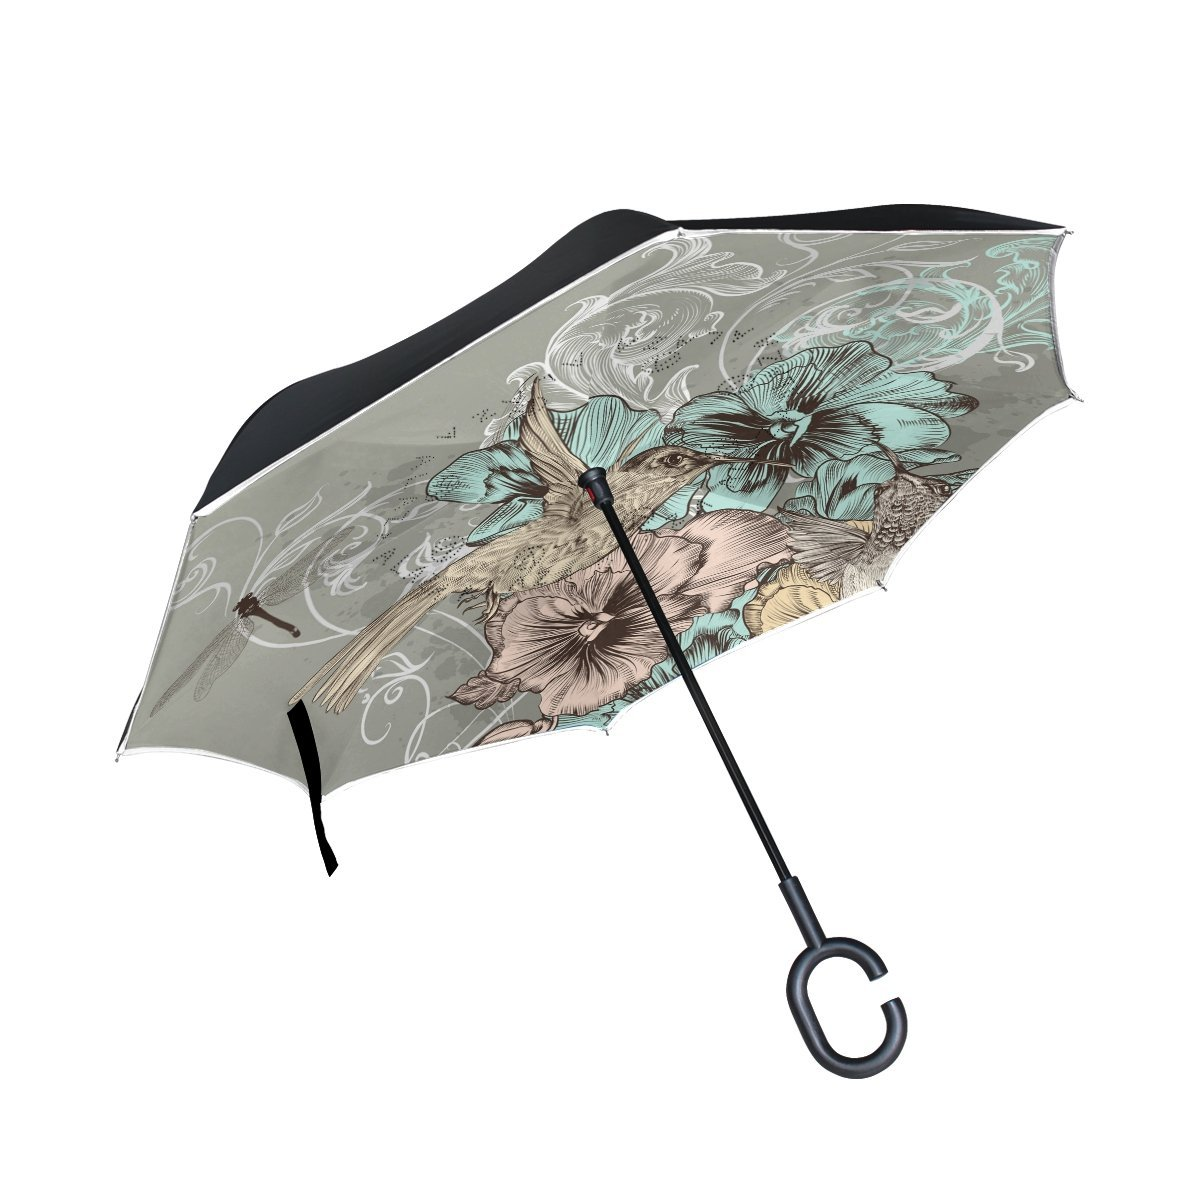 Custom Leaves Compact Travel Windproof Rainproof Foldable Umbrella